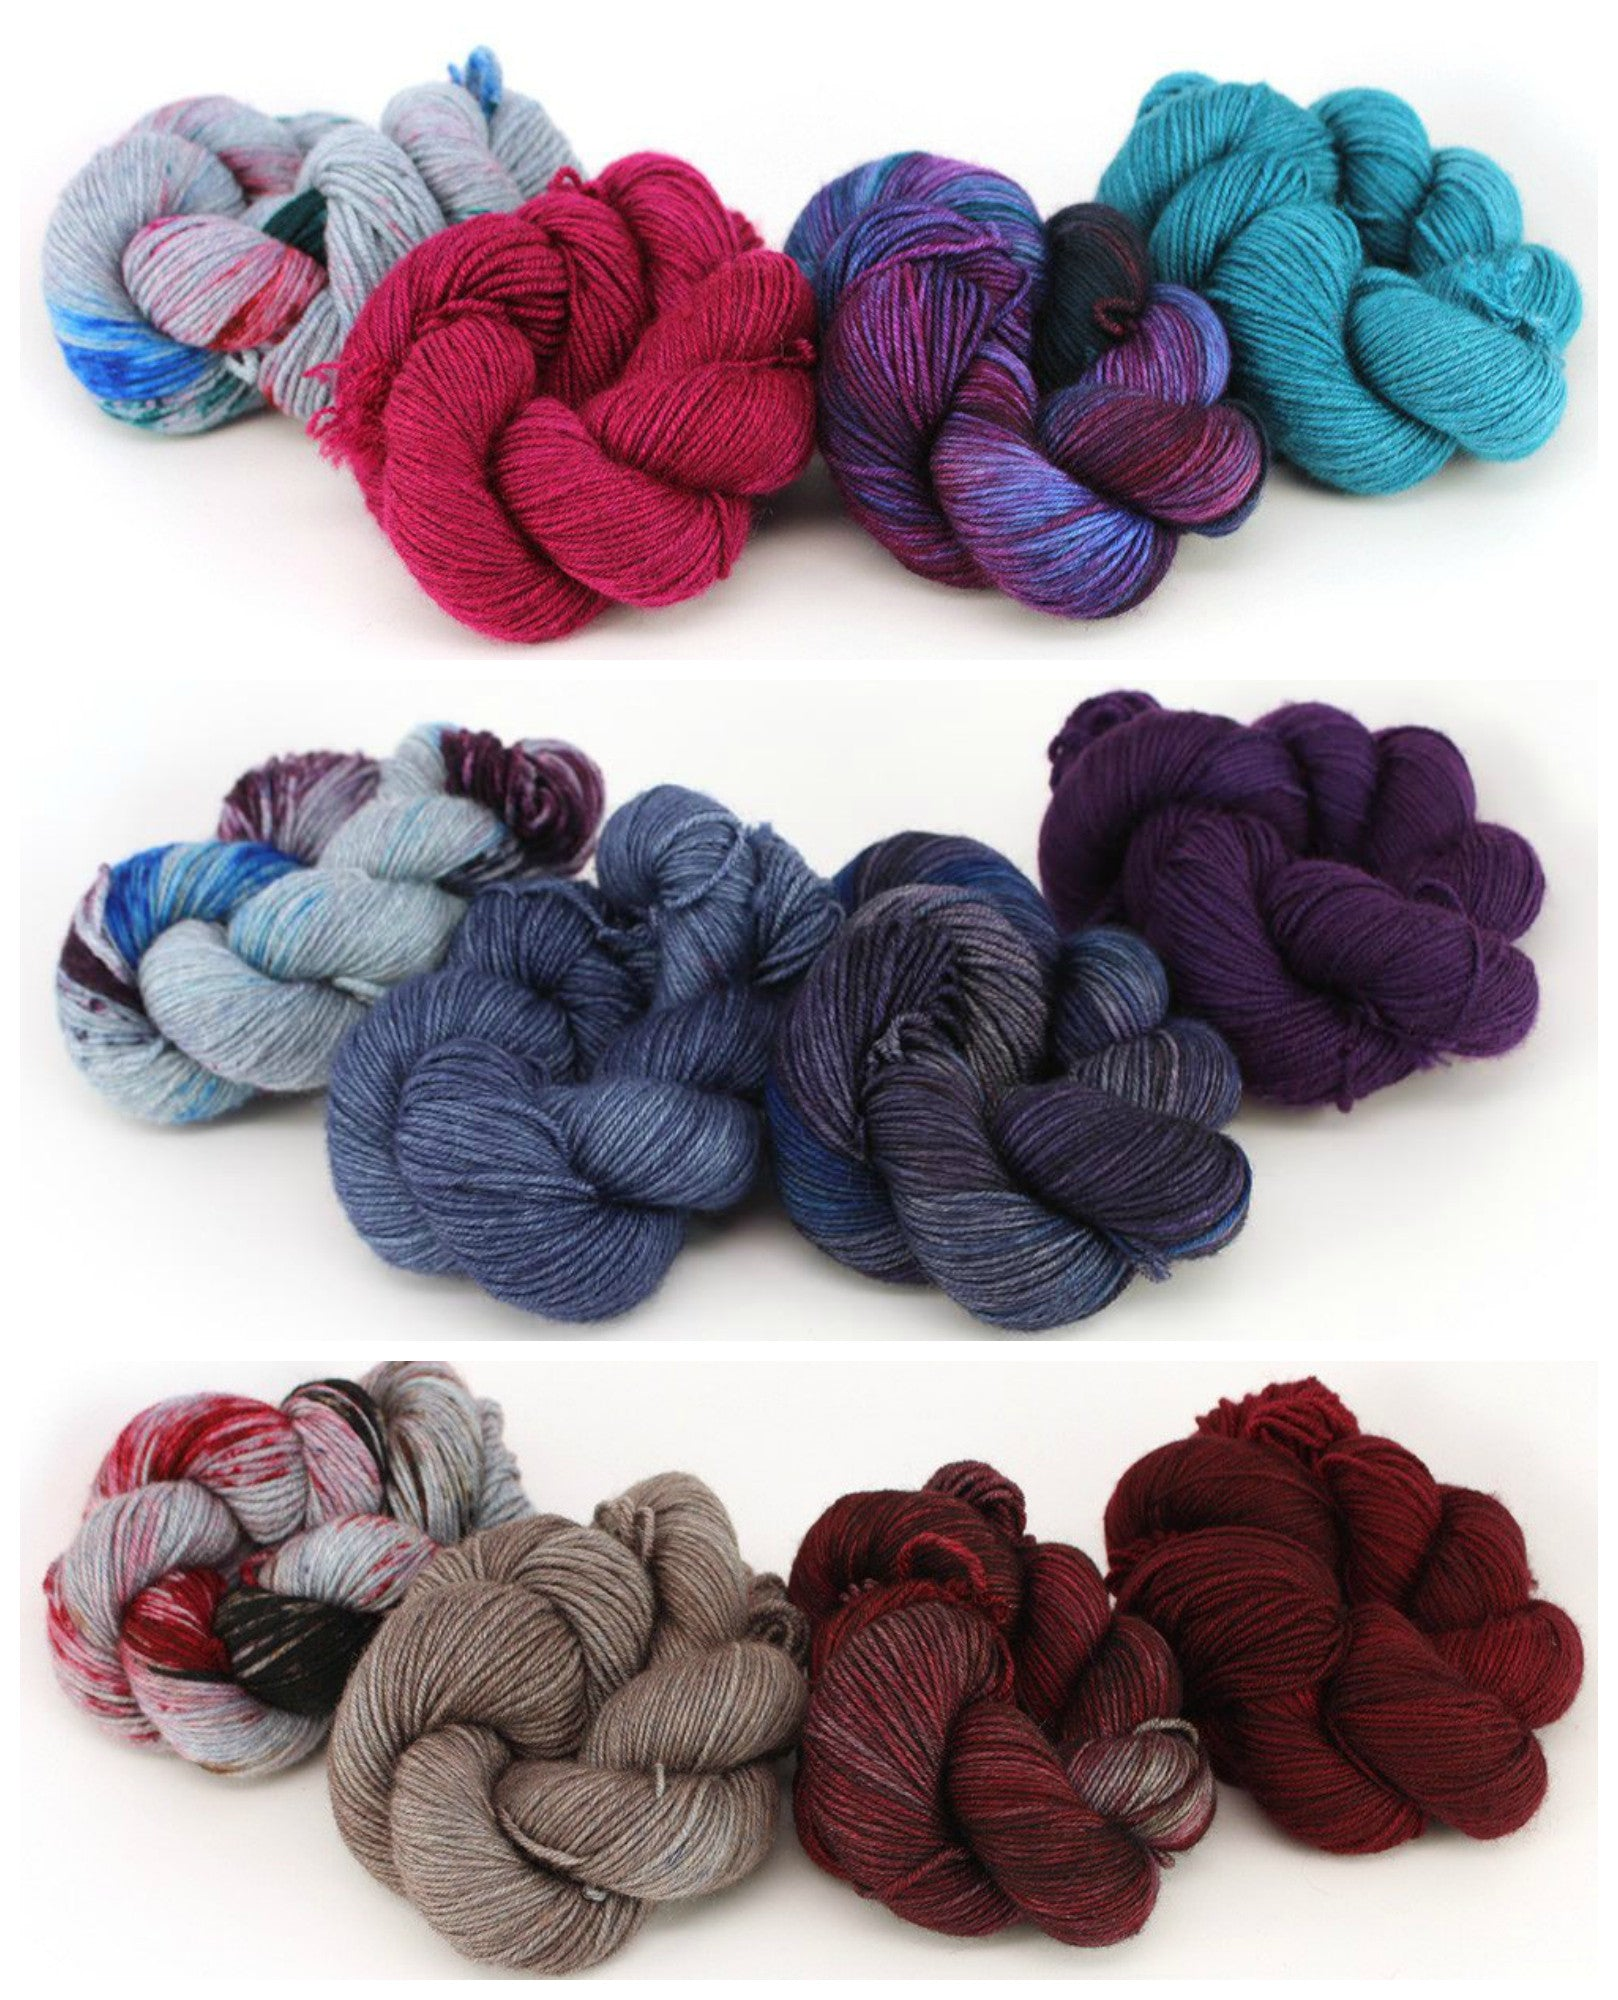 Knitting Patterns for Gradient Sets